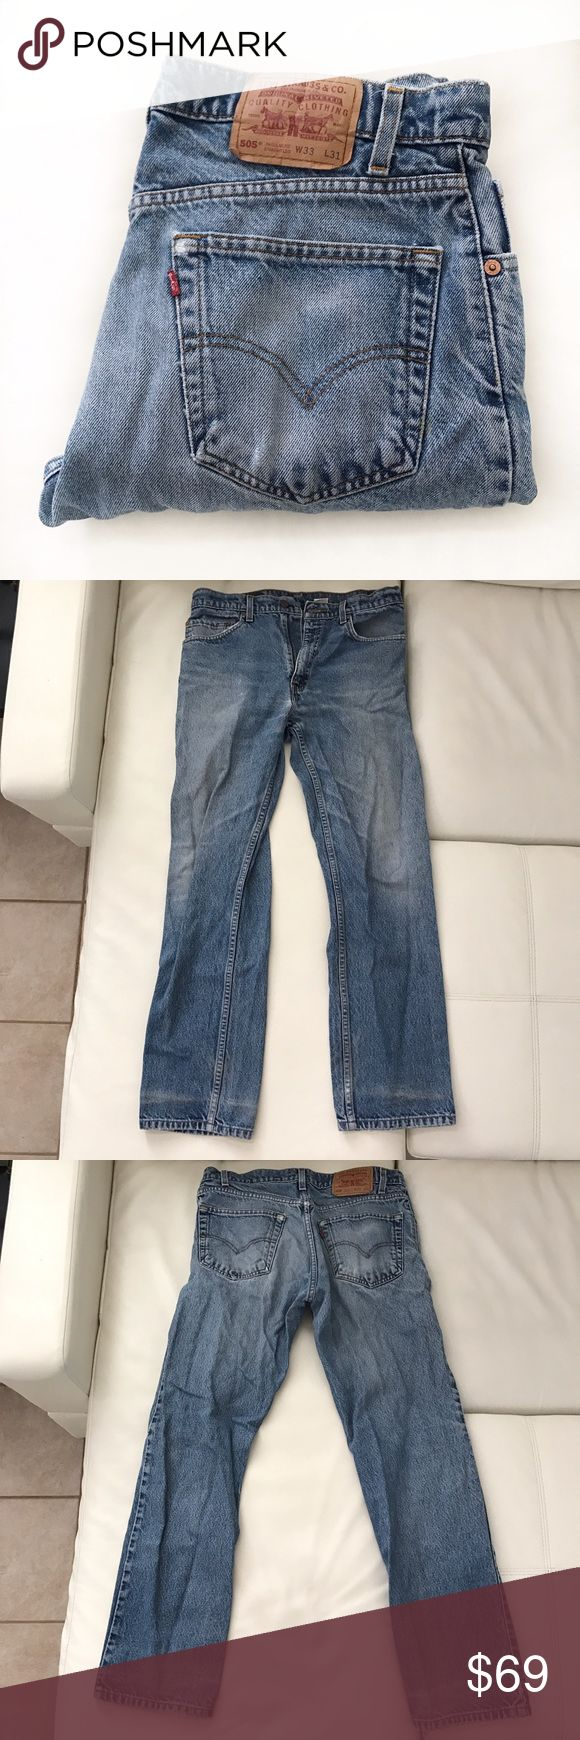 "LEVI'S 505 jeans light wash high waist size 33 Classic jeans in a vintage wash. Great condition.  👖Waist 33"" 👖Rise 11"" 👖Inseam 30"" Levi's Jeans Straight Leg"